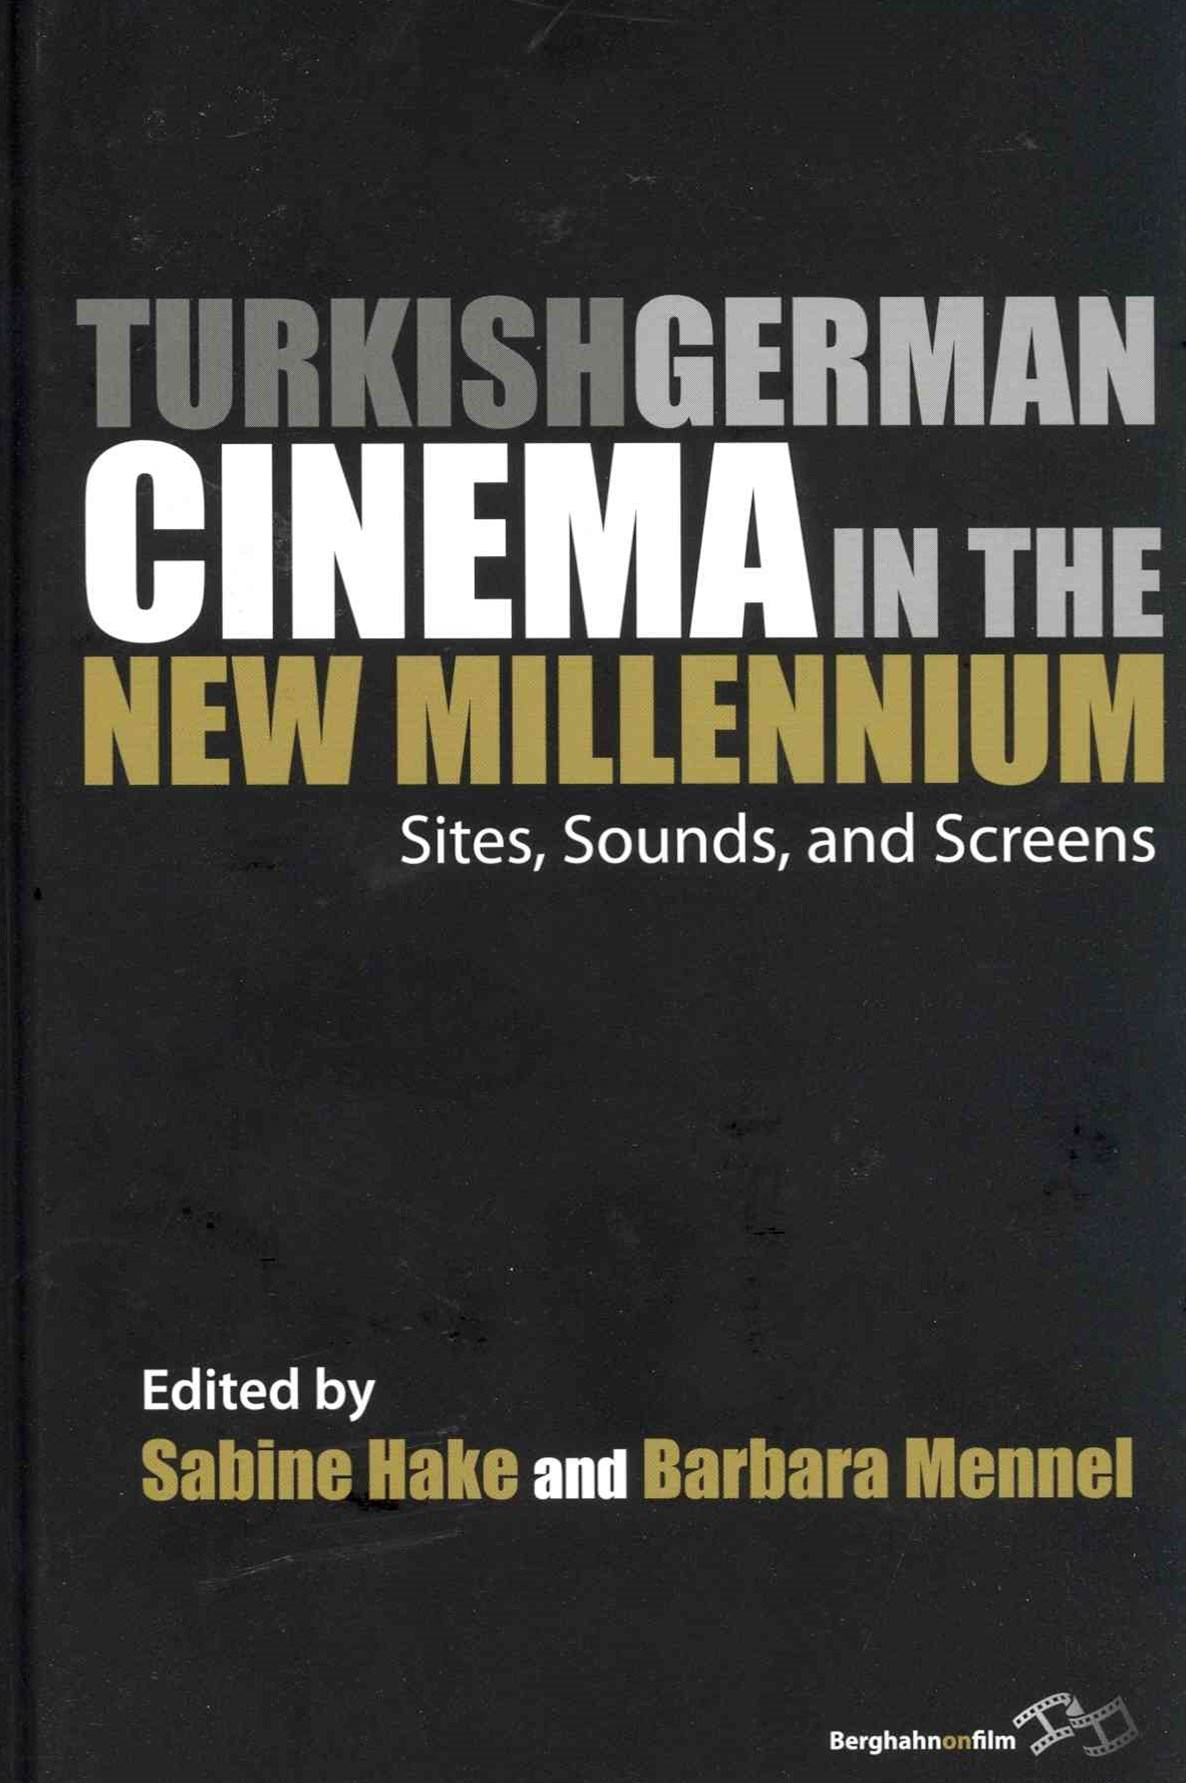 Turkish German Cinema in the New Millennium